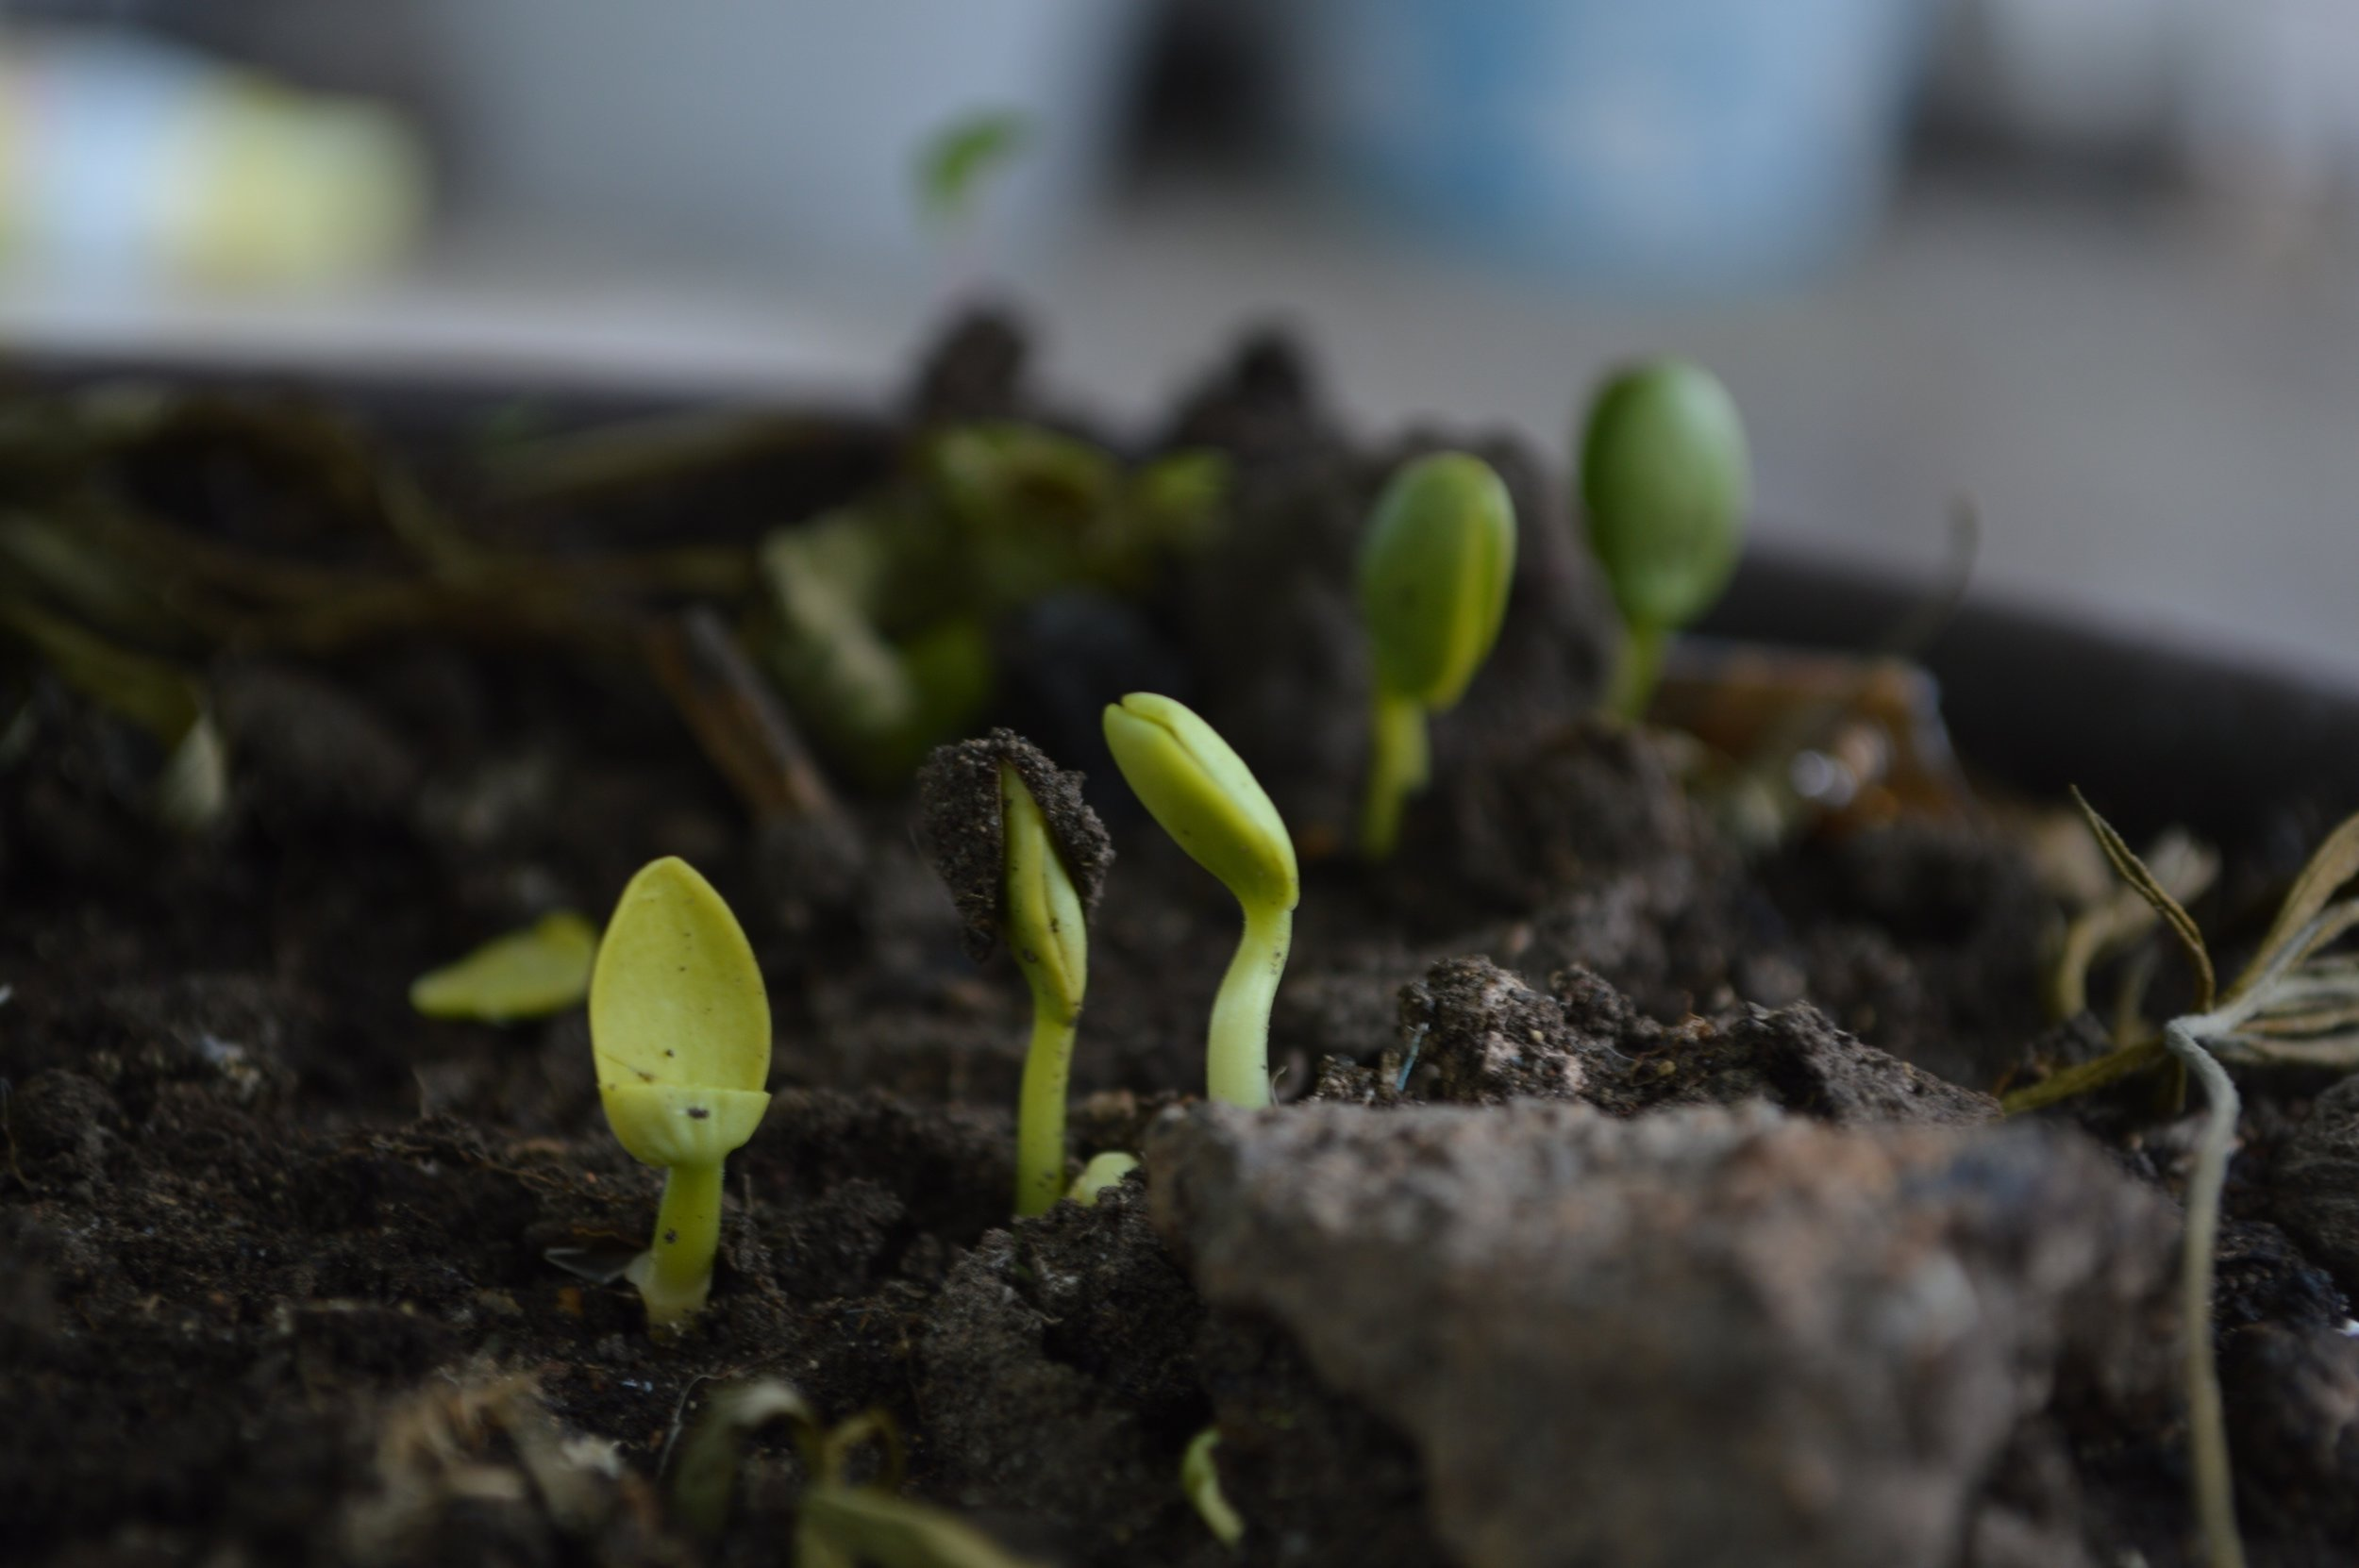 The degradation products from compostable products must be able to support plant growth. Photo: Pixabay